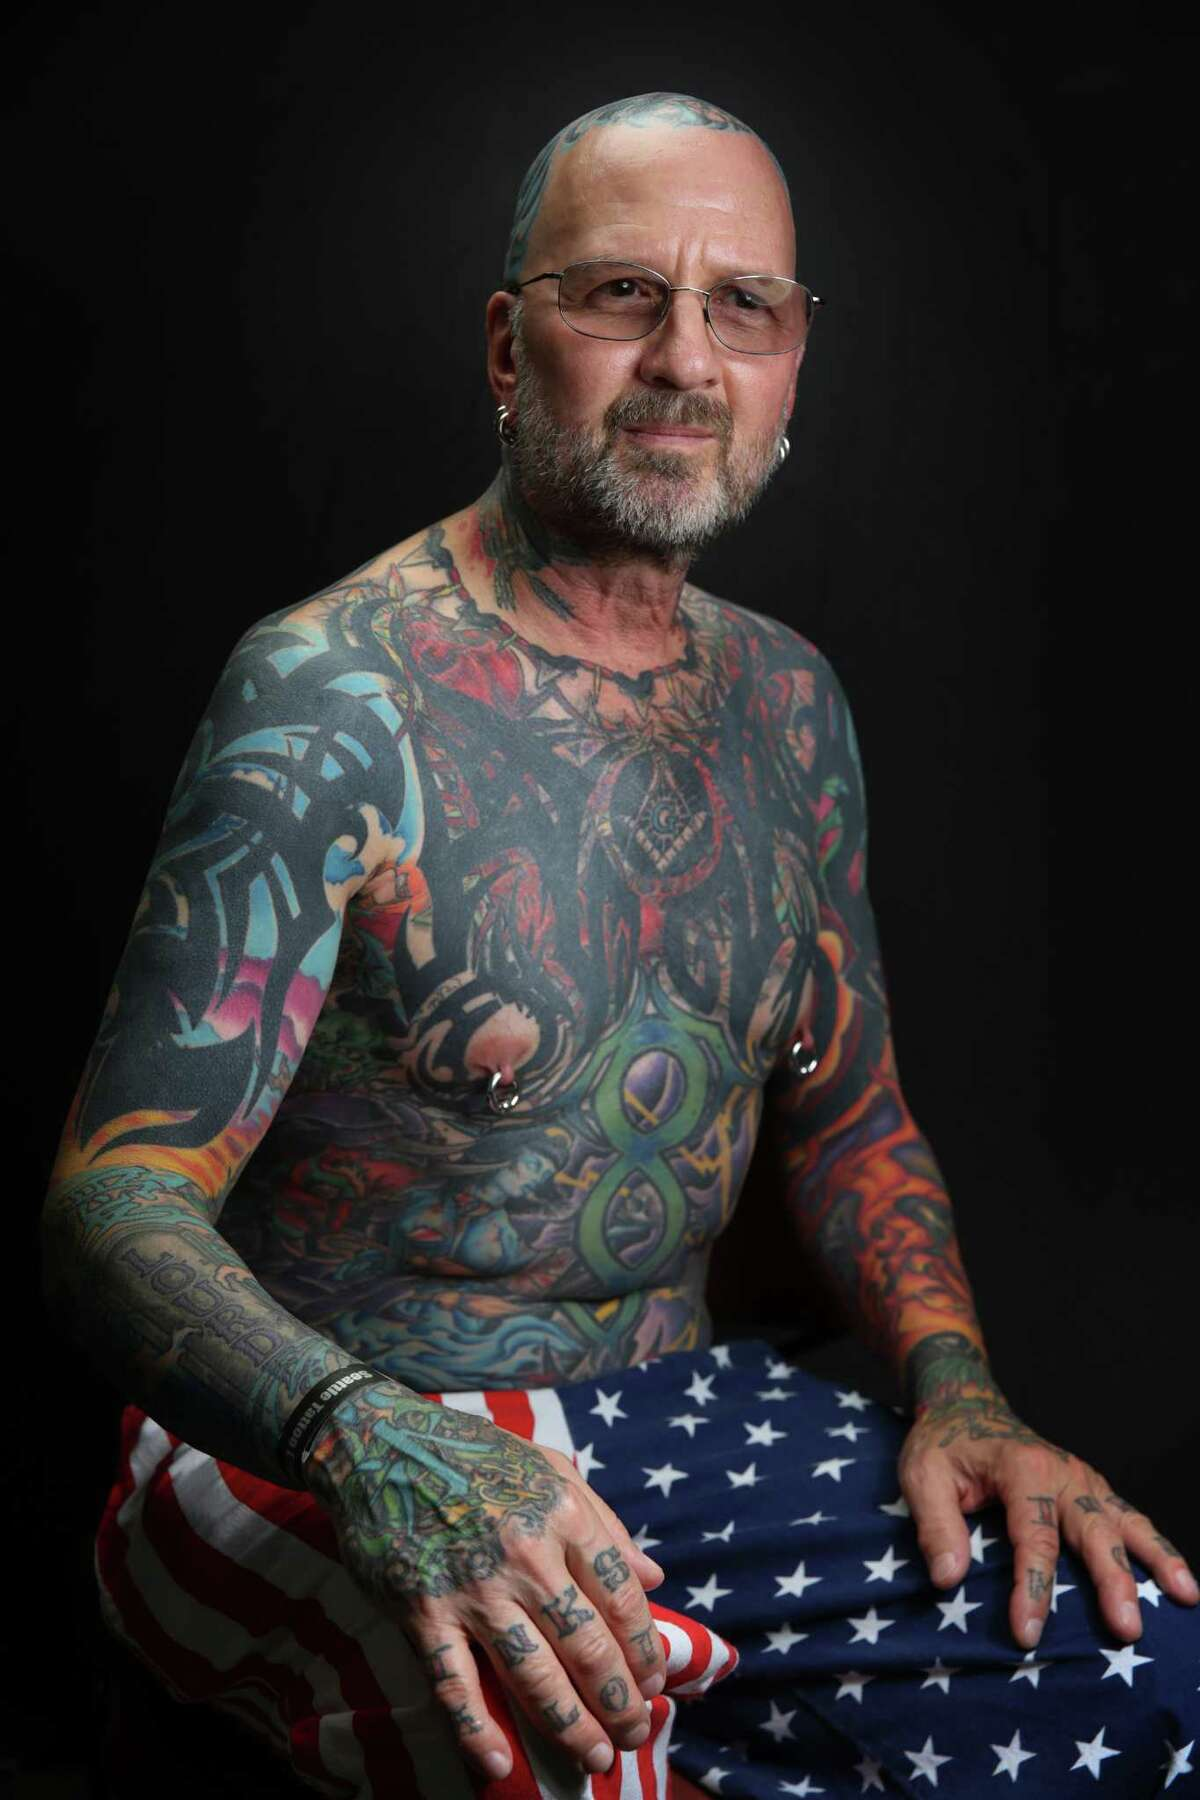 Ed Scoll, who began covering his body with tattoos in 2003, poses for a portrait at the annual Seattle Tattoo Expo, Aug. 19, 2017 at Fisher Pavilion.